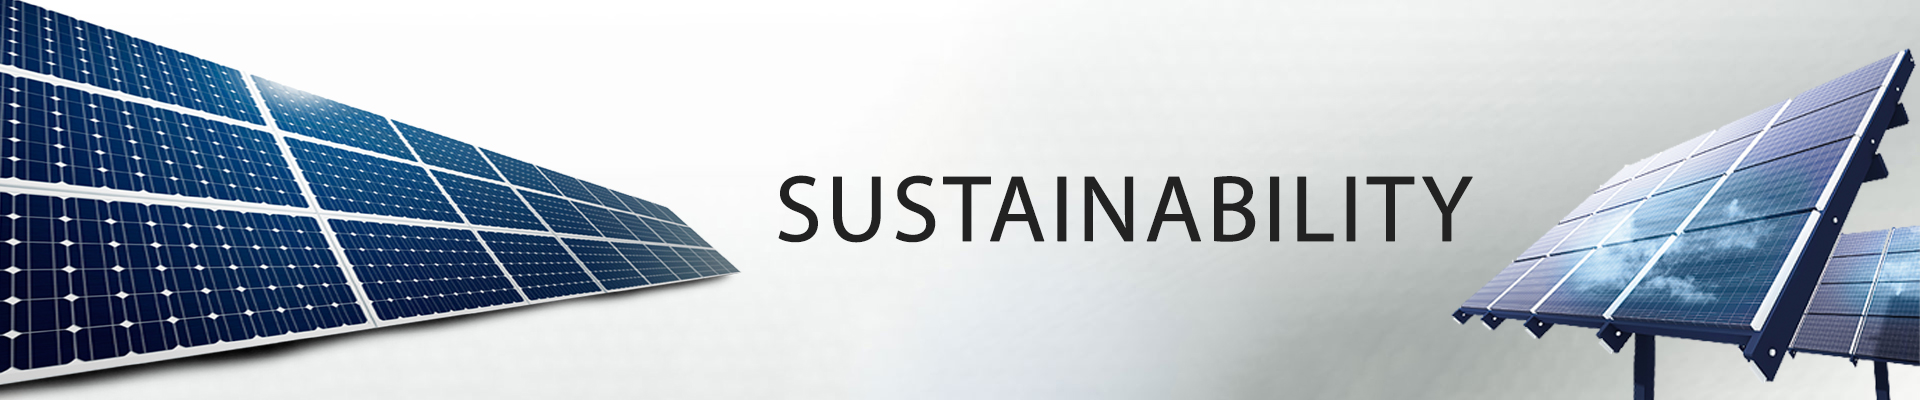 Sustainability Hero Image